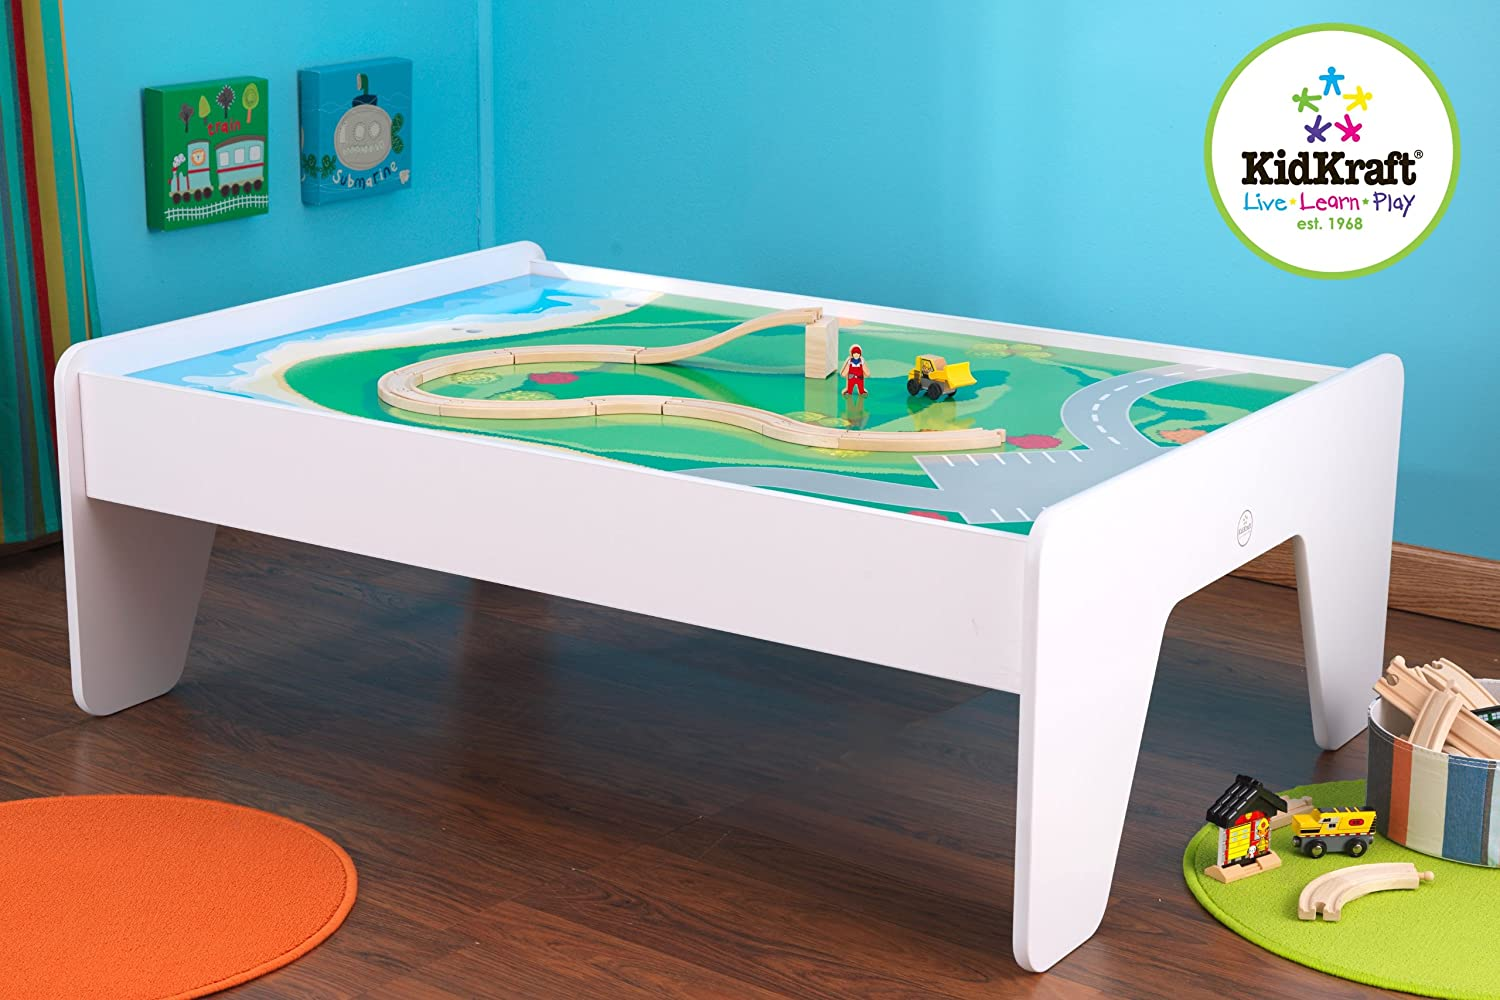 & Amazon.com: KidKraft Train Table - White: Toys \u0026 Games